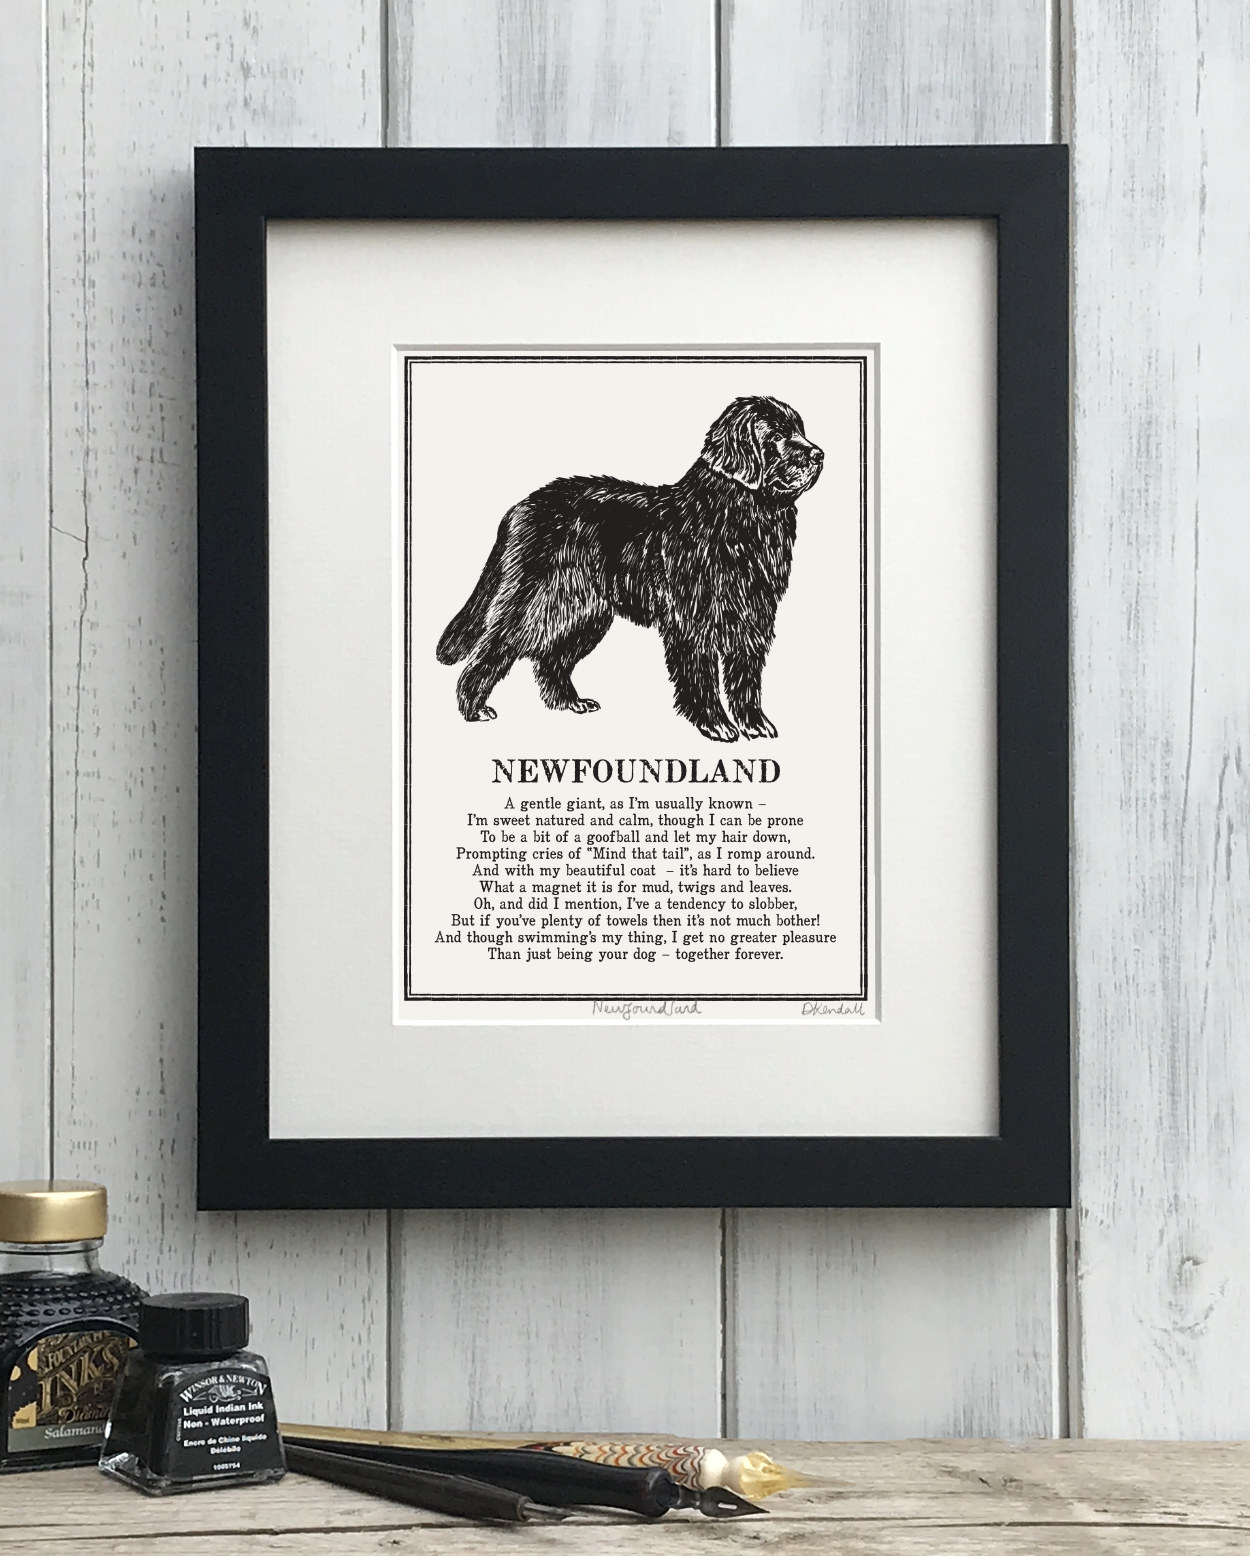 Newfoundland Doggerel Illustrated Poem Art Print | The Enlightened Hound